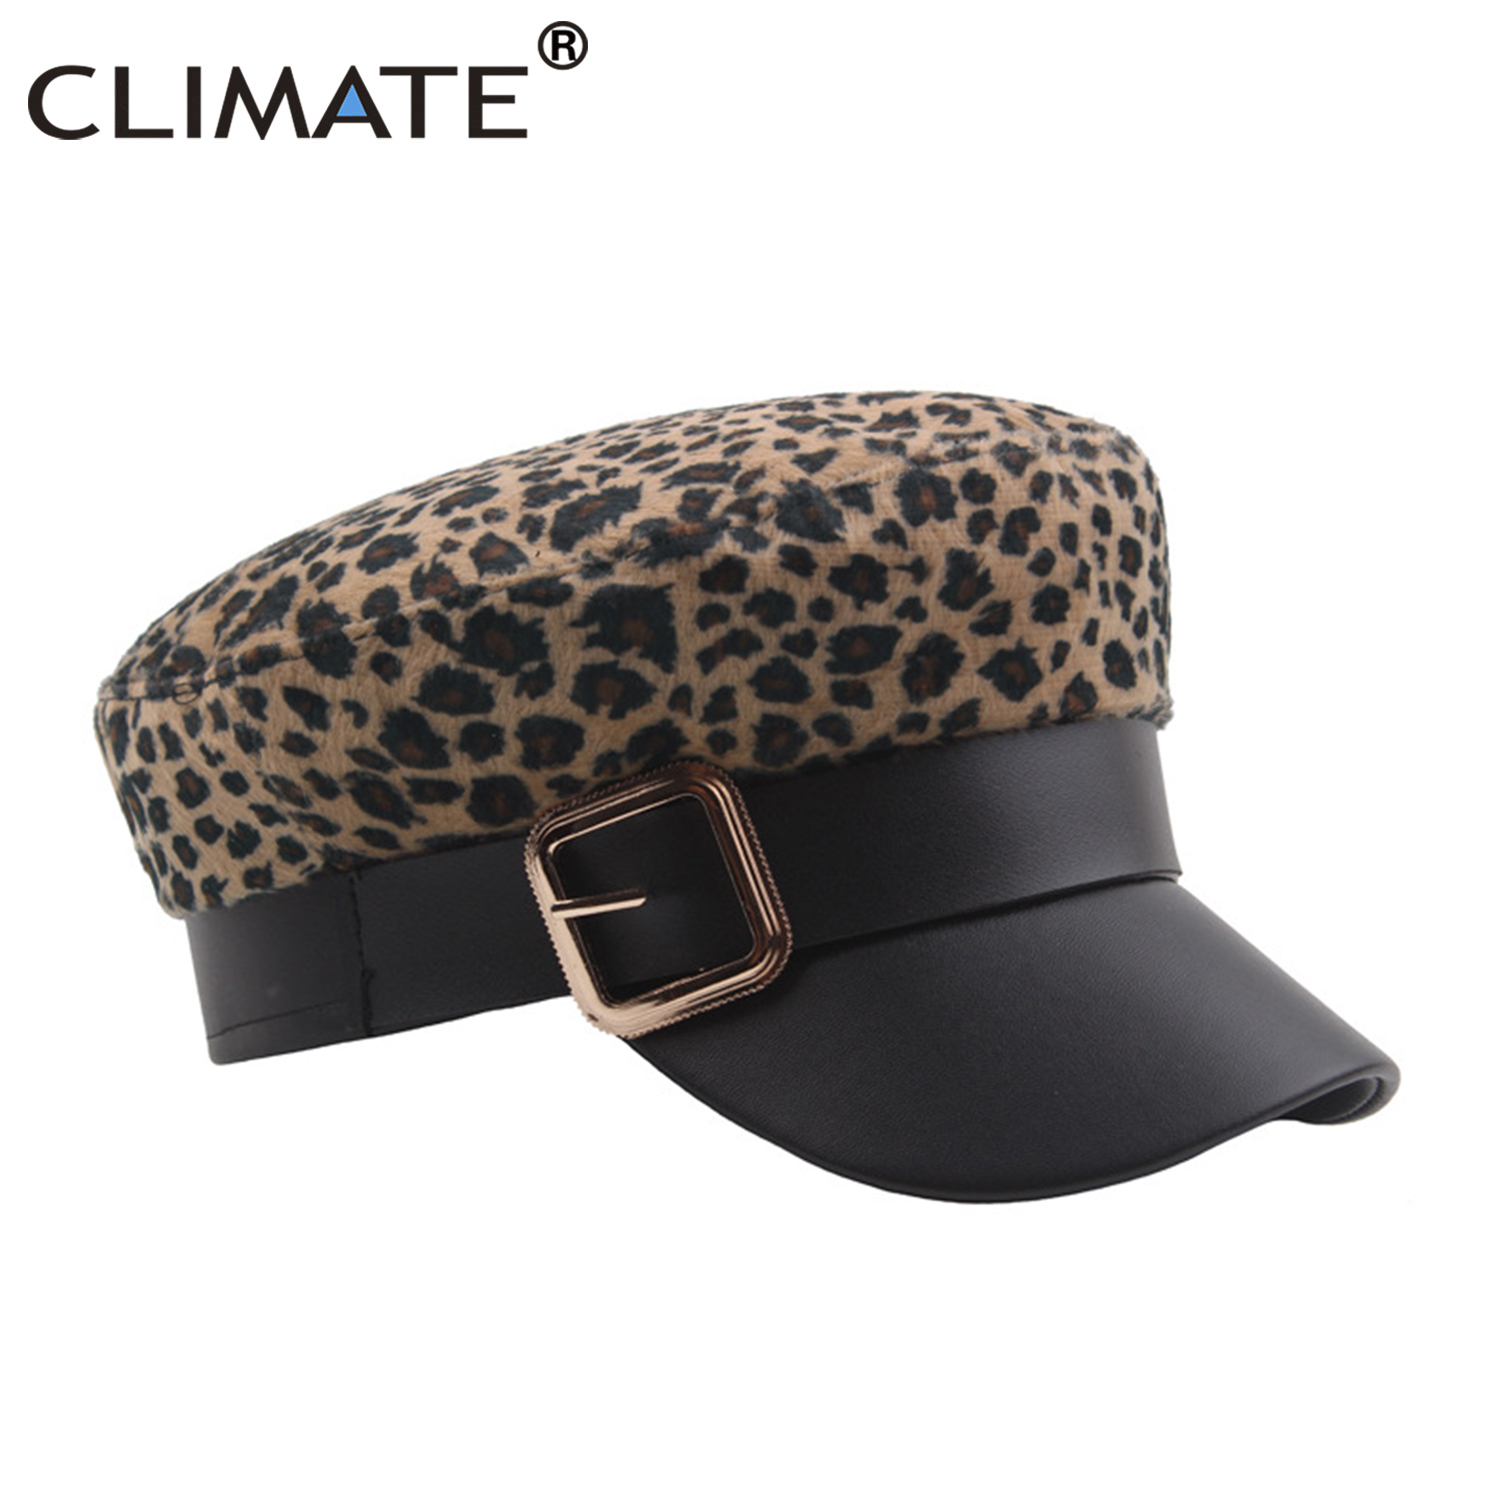 CLIMATE Women Leopard <font><b>Cap</b></font> New Fashion PU Military <font><b>Caps</b></font> <font><b>Sexy</b></font> Sailor Navy Army <font><b>Cap</b></font> Hat Cool Buckle Marine Hat <font><b>Caps</b></font> for Woman image